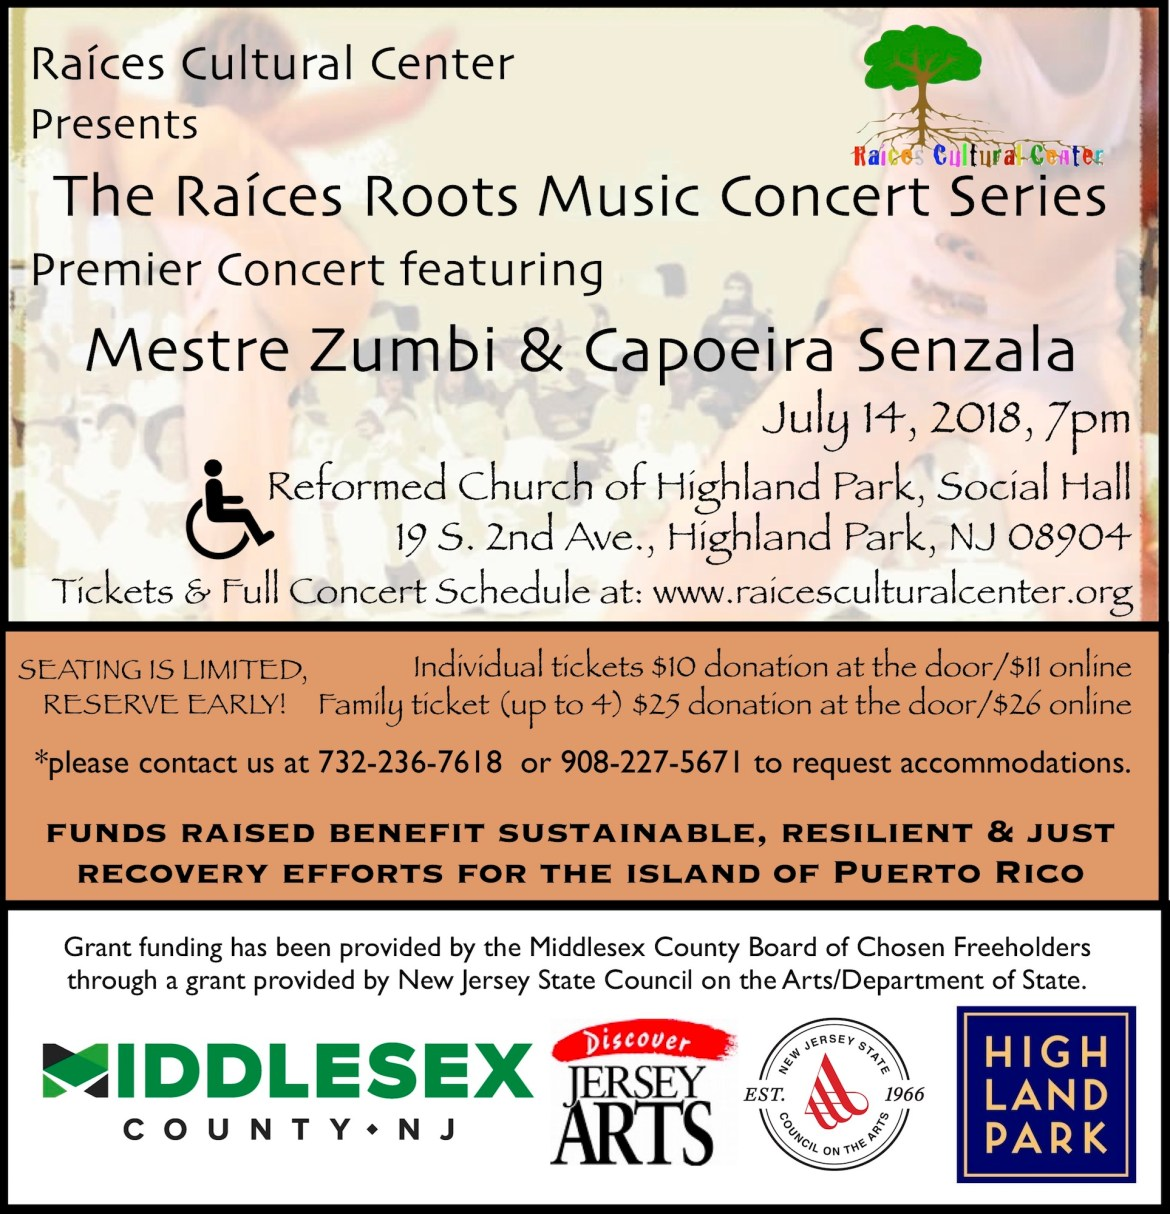 flyer for the first concert in the Raíces Roots Music Concert Series presenting Mestre Zumbi & Capoeira Senzala July 14, 7pm at the Reformed Church of Highland Park.